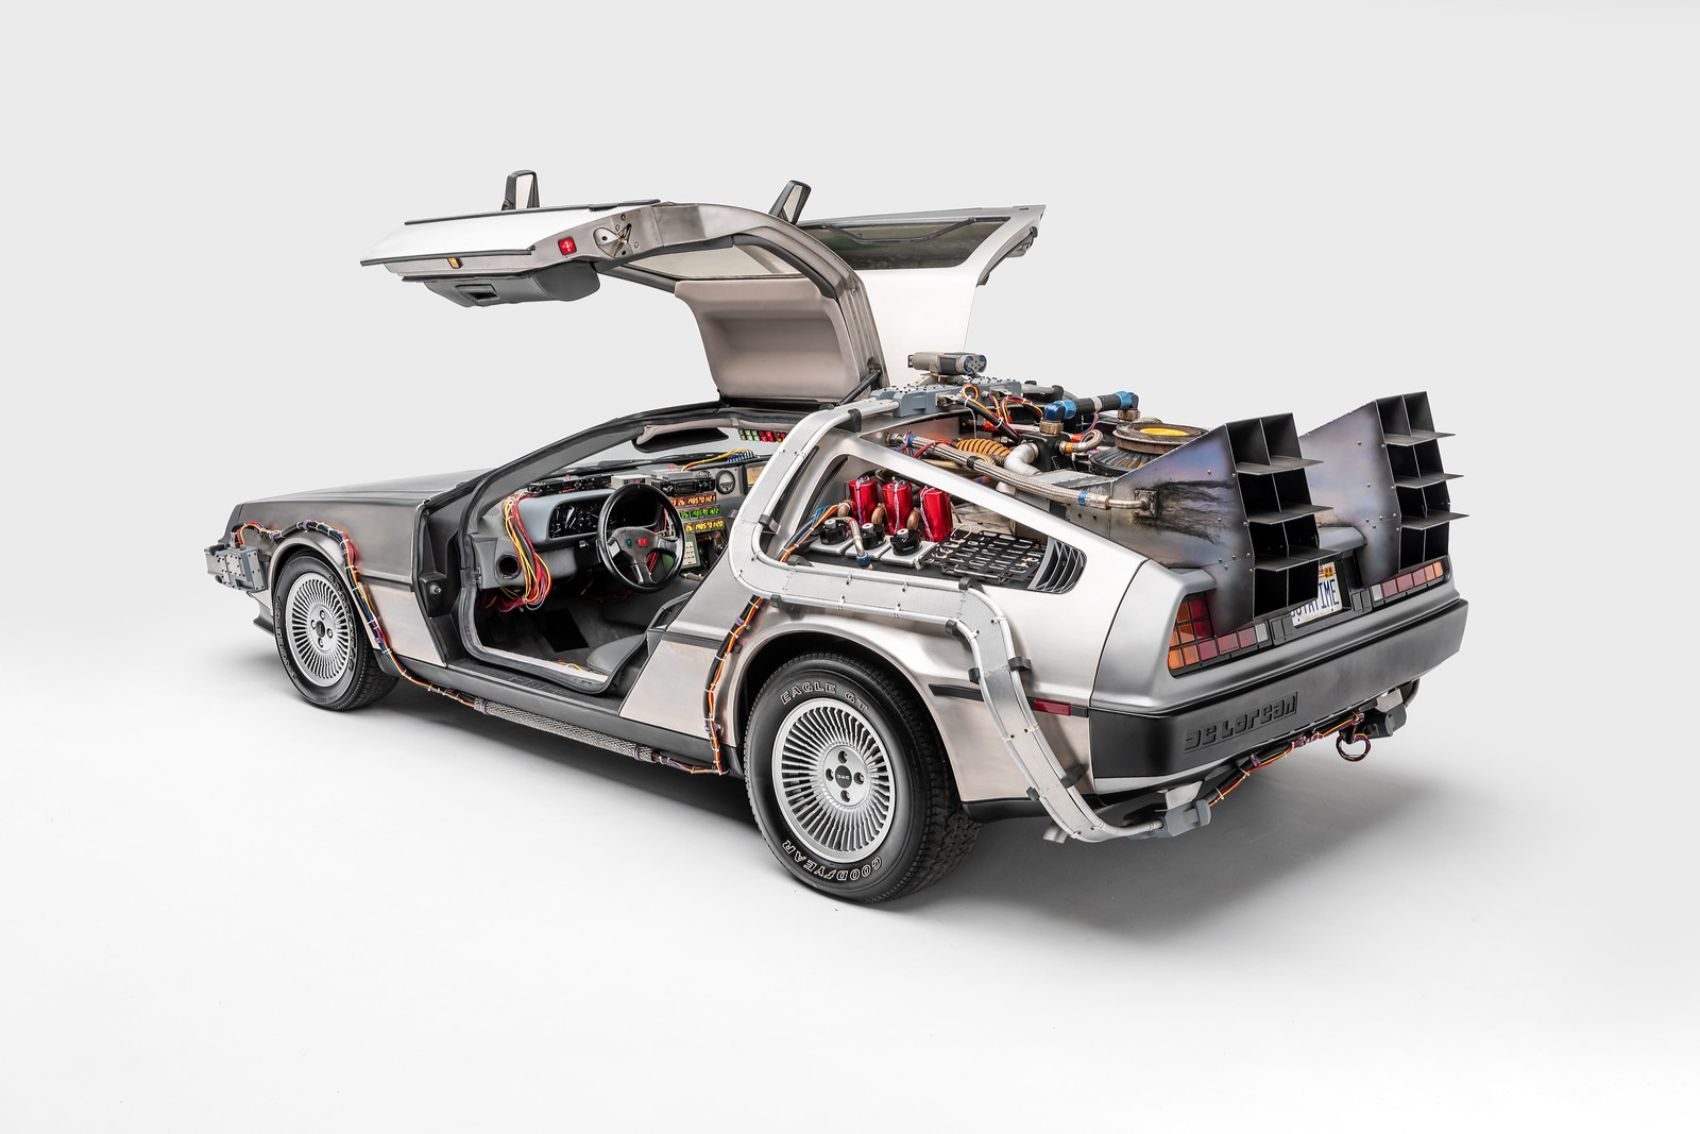 The Back to the Future series is just as enjoyable today as it was 30 years go. We examine some of the technology in the film to see if any of it came true.